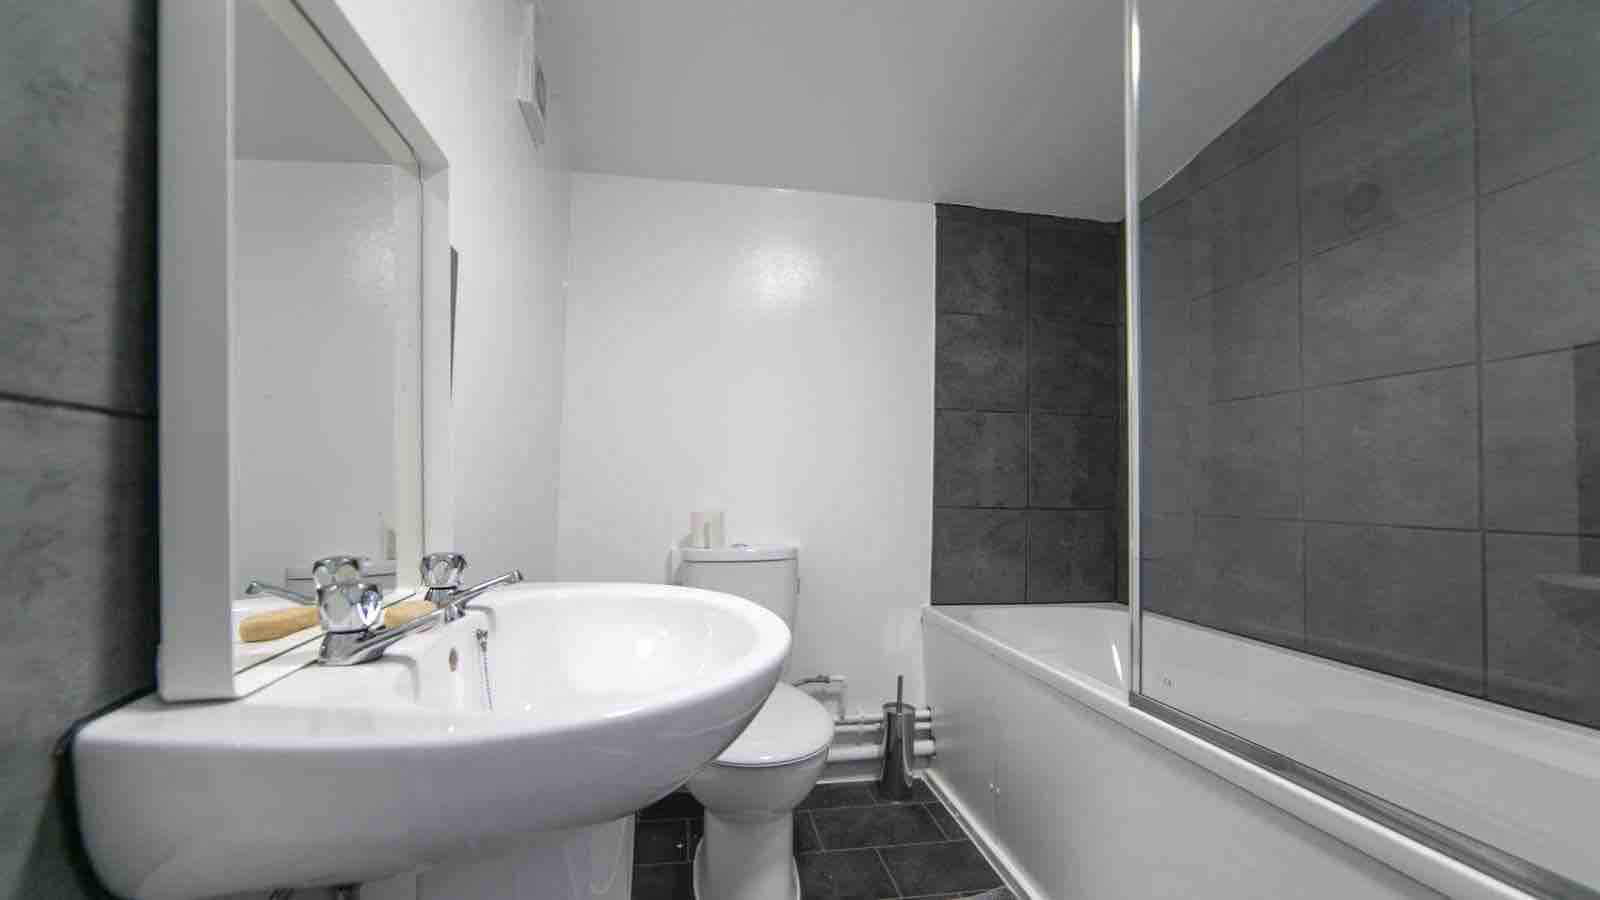 1 room in Westbourne, london, NW6 5LS RoomsLocal image